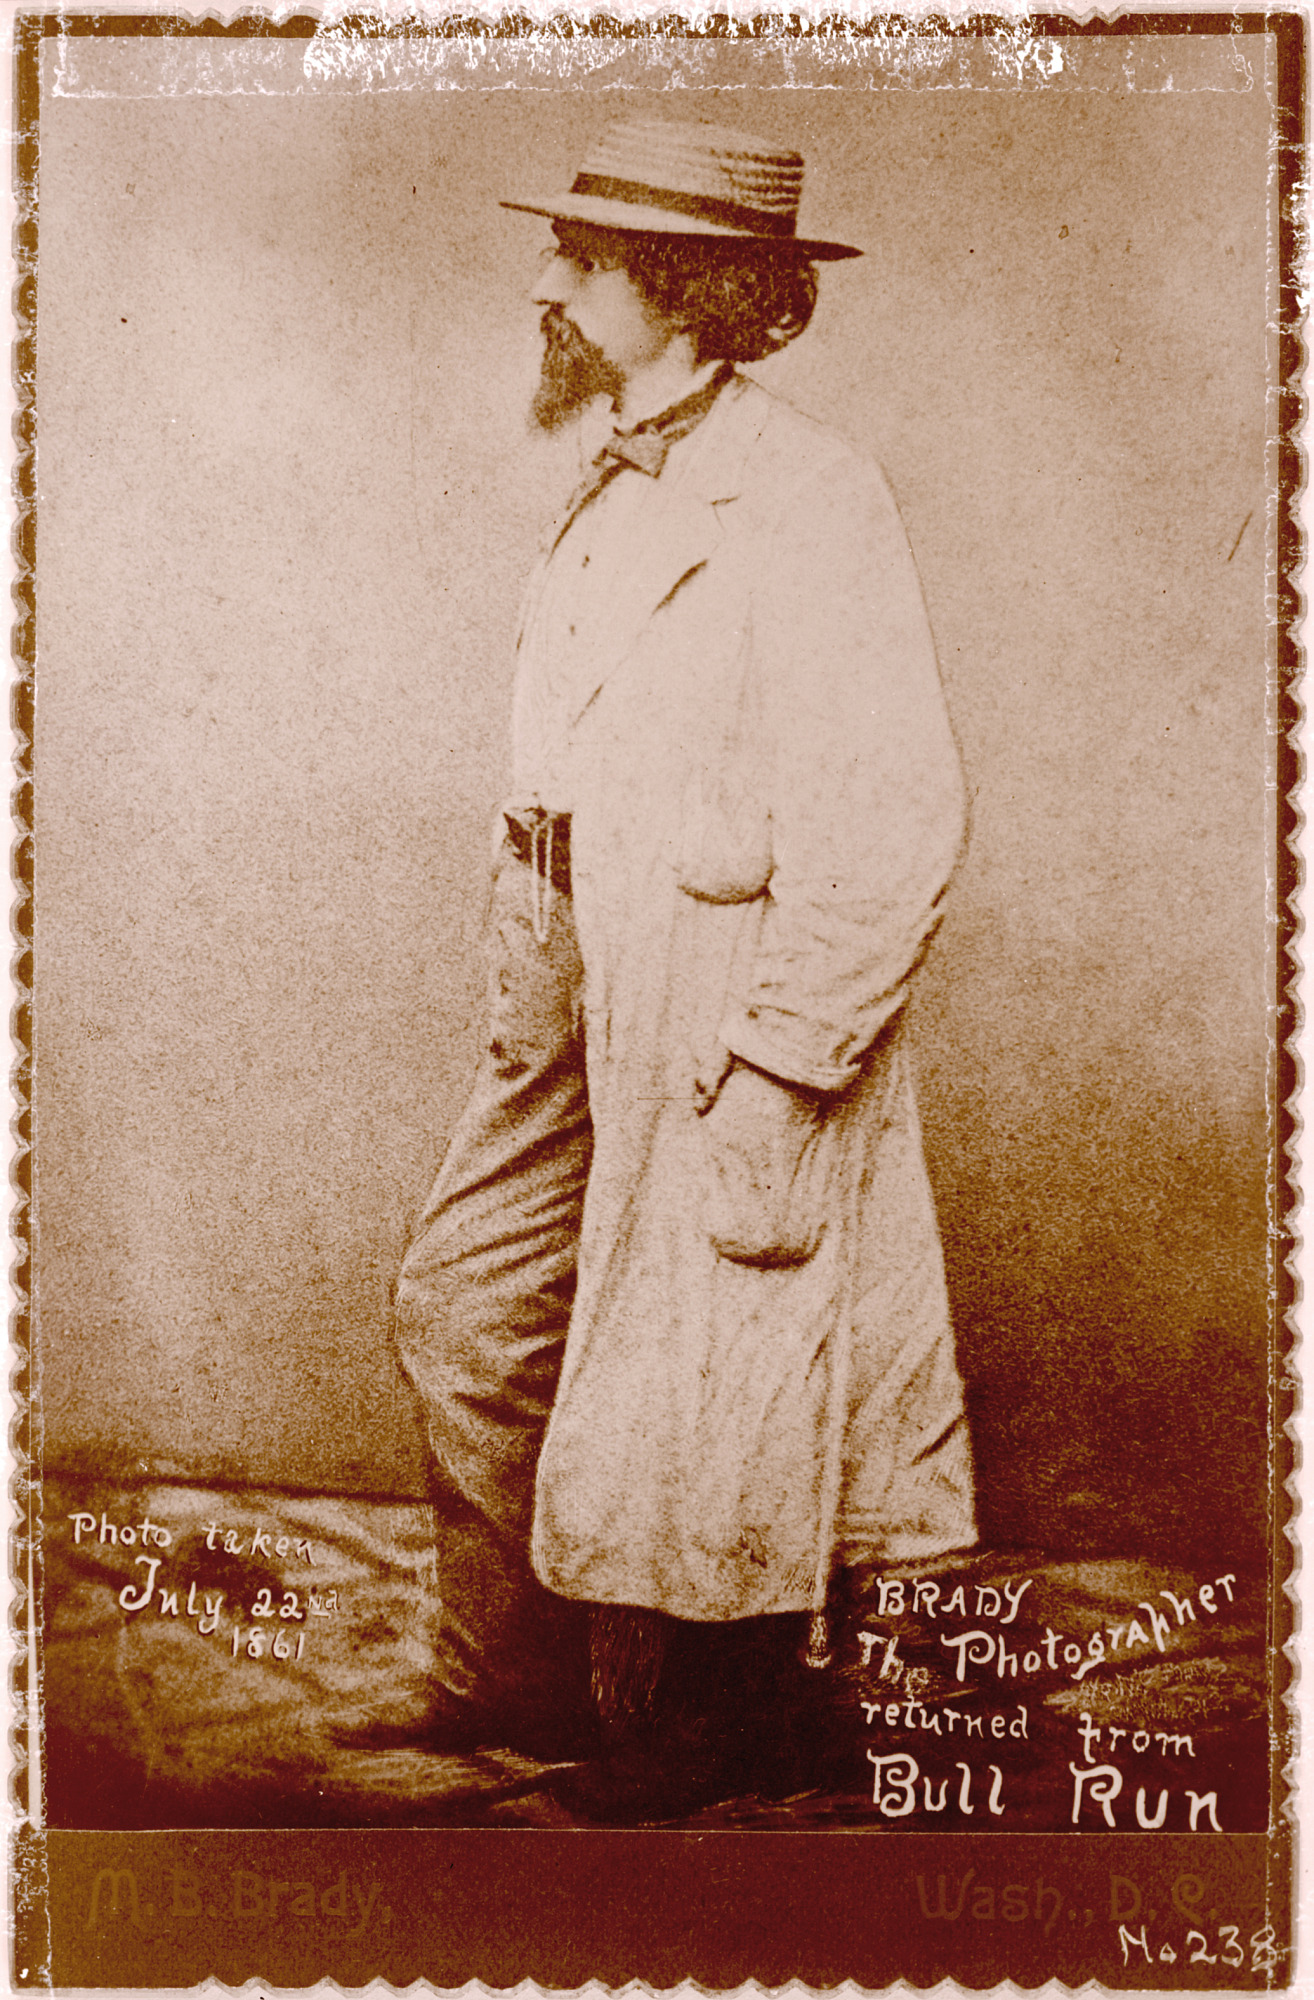 Photograph of Mathew Brady after Bull Run